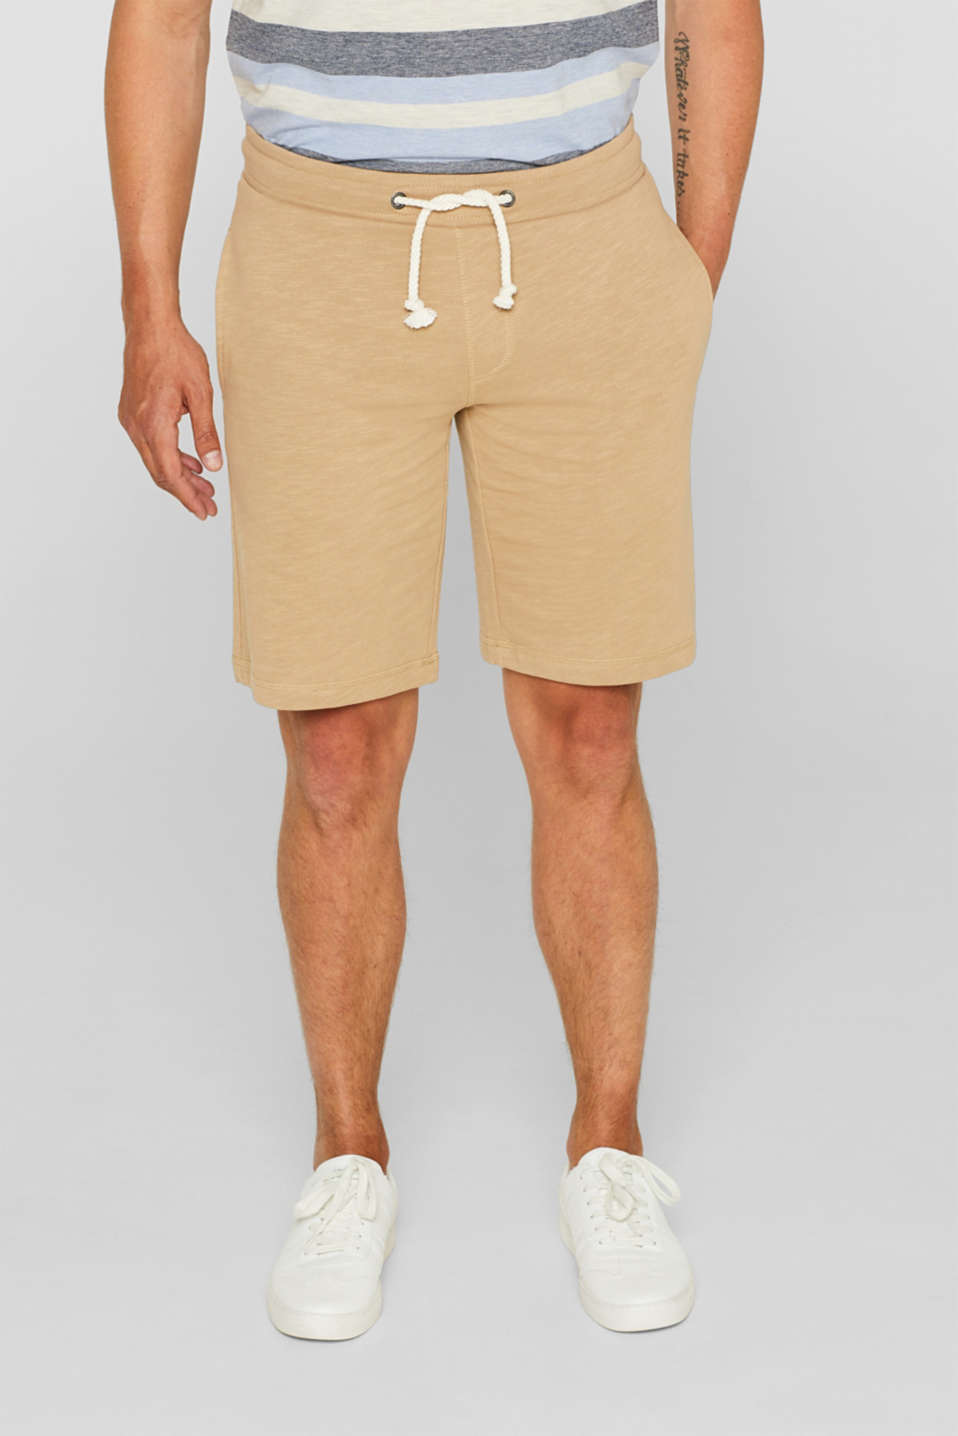 edc - Sweatshirt shorts in 100% cotton